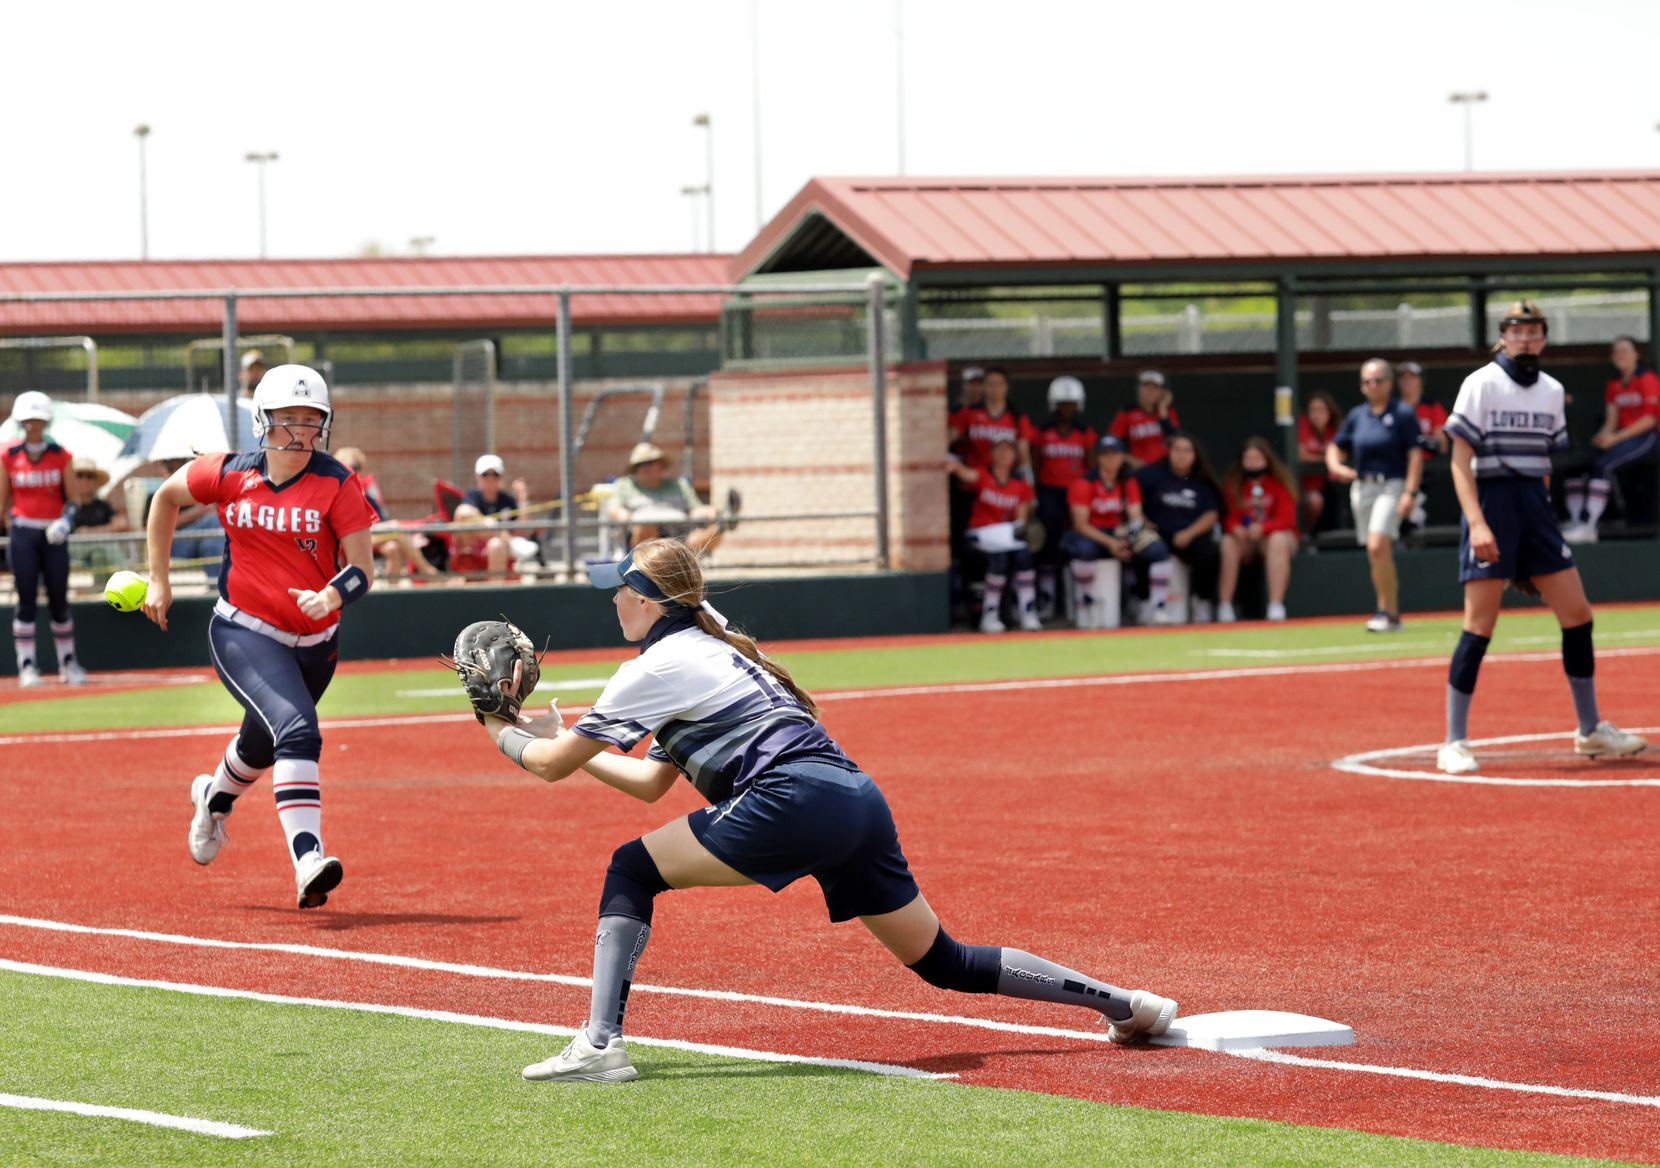 Allen High School player #12, Mackenzie Duckworth, is stopped by Flower Mound High School player #18, Jordyn Holland, during a softball playoff game at Allen High School in Allen, TX, on May 15, 2021. (Jason Janik/Special Contributor)